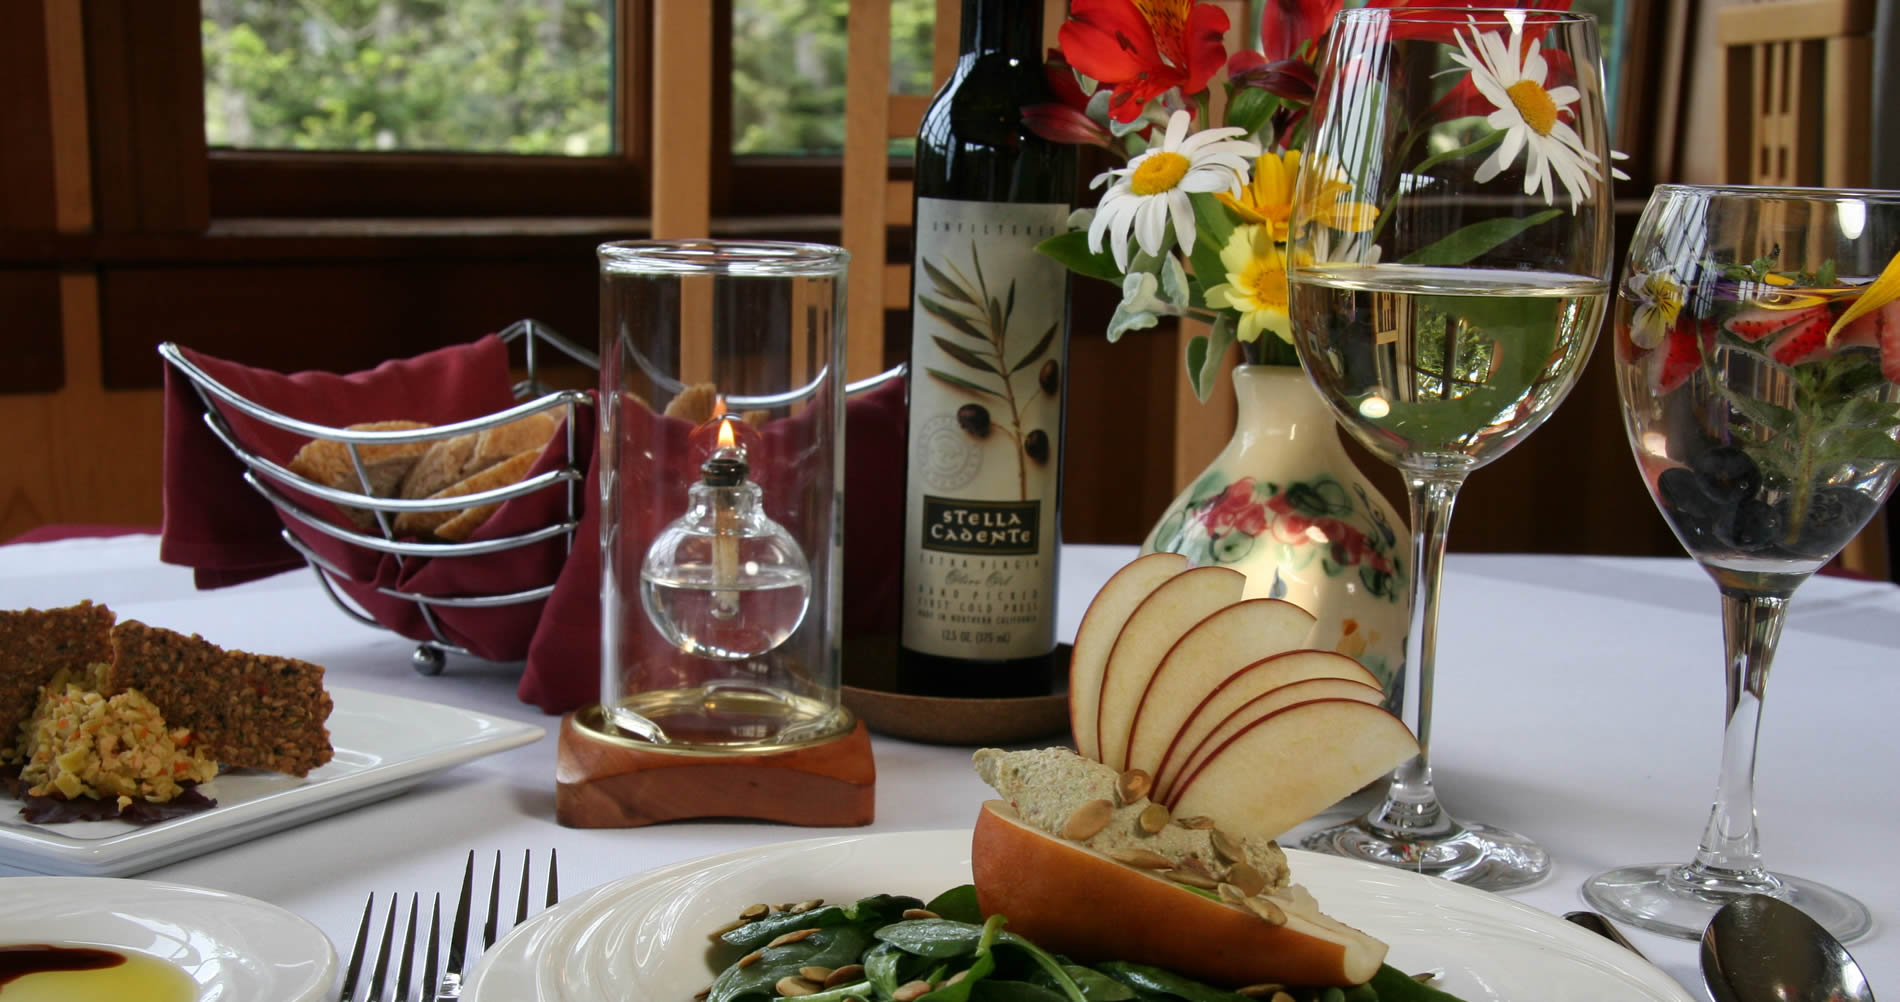 mendocino restaurant - ravens wine with dinner